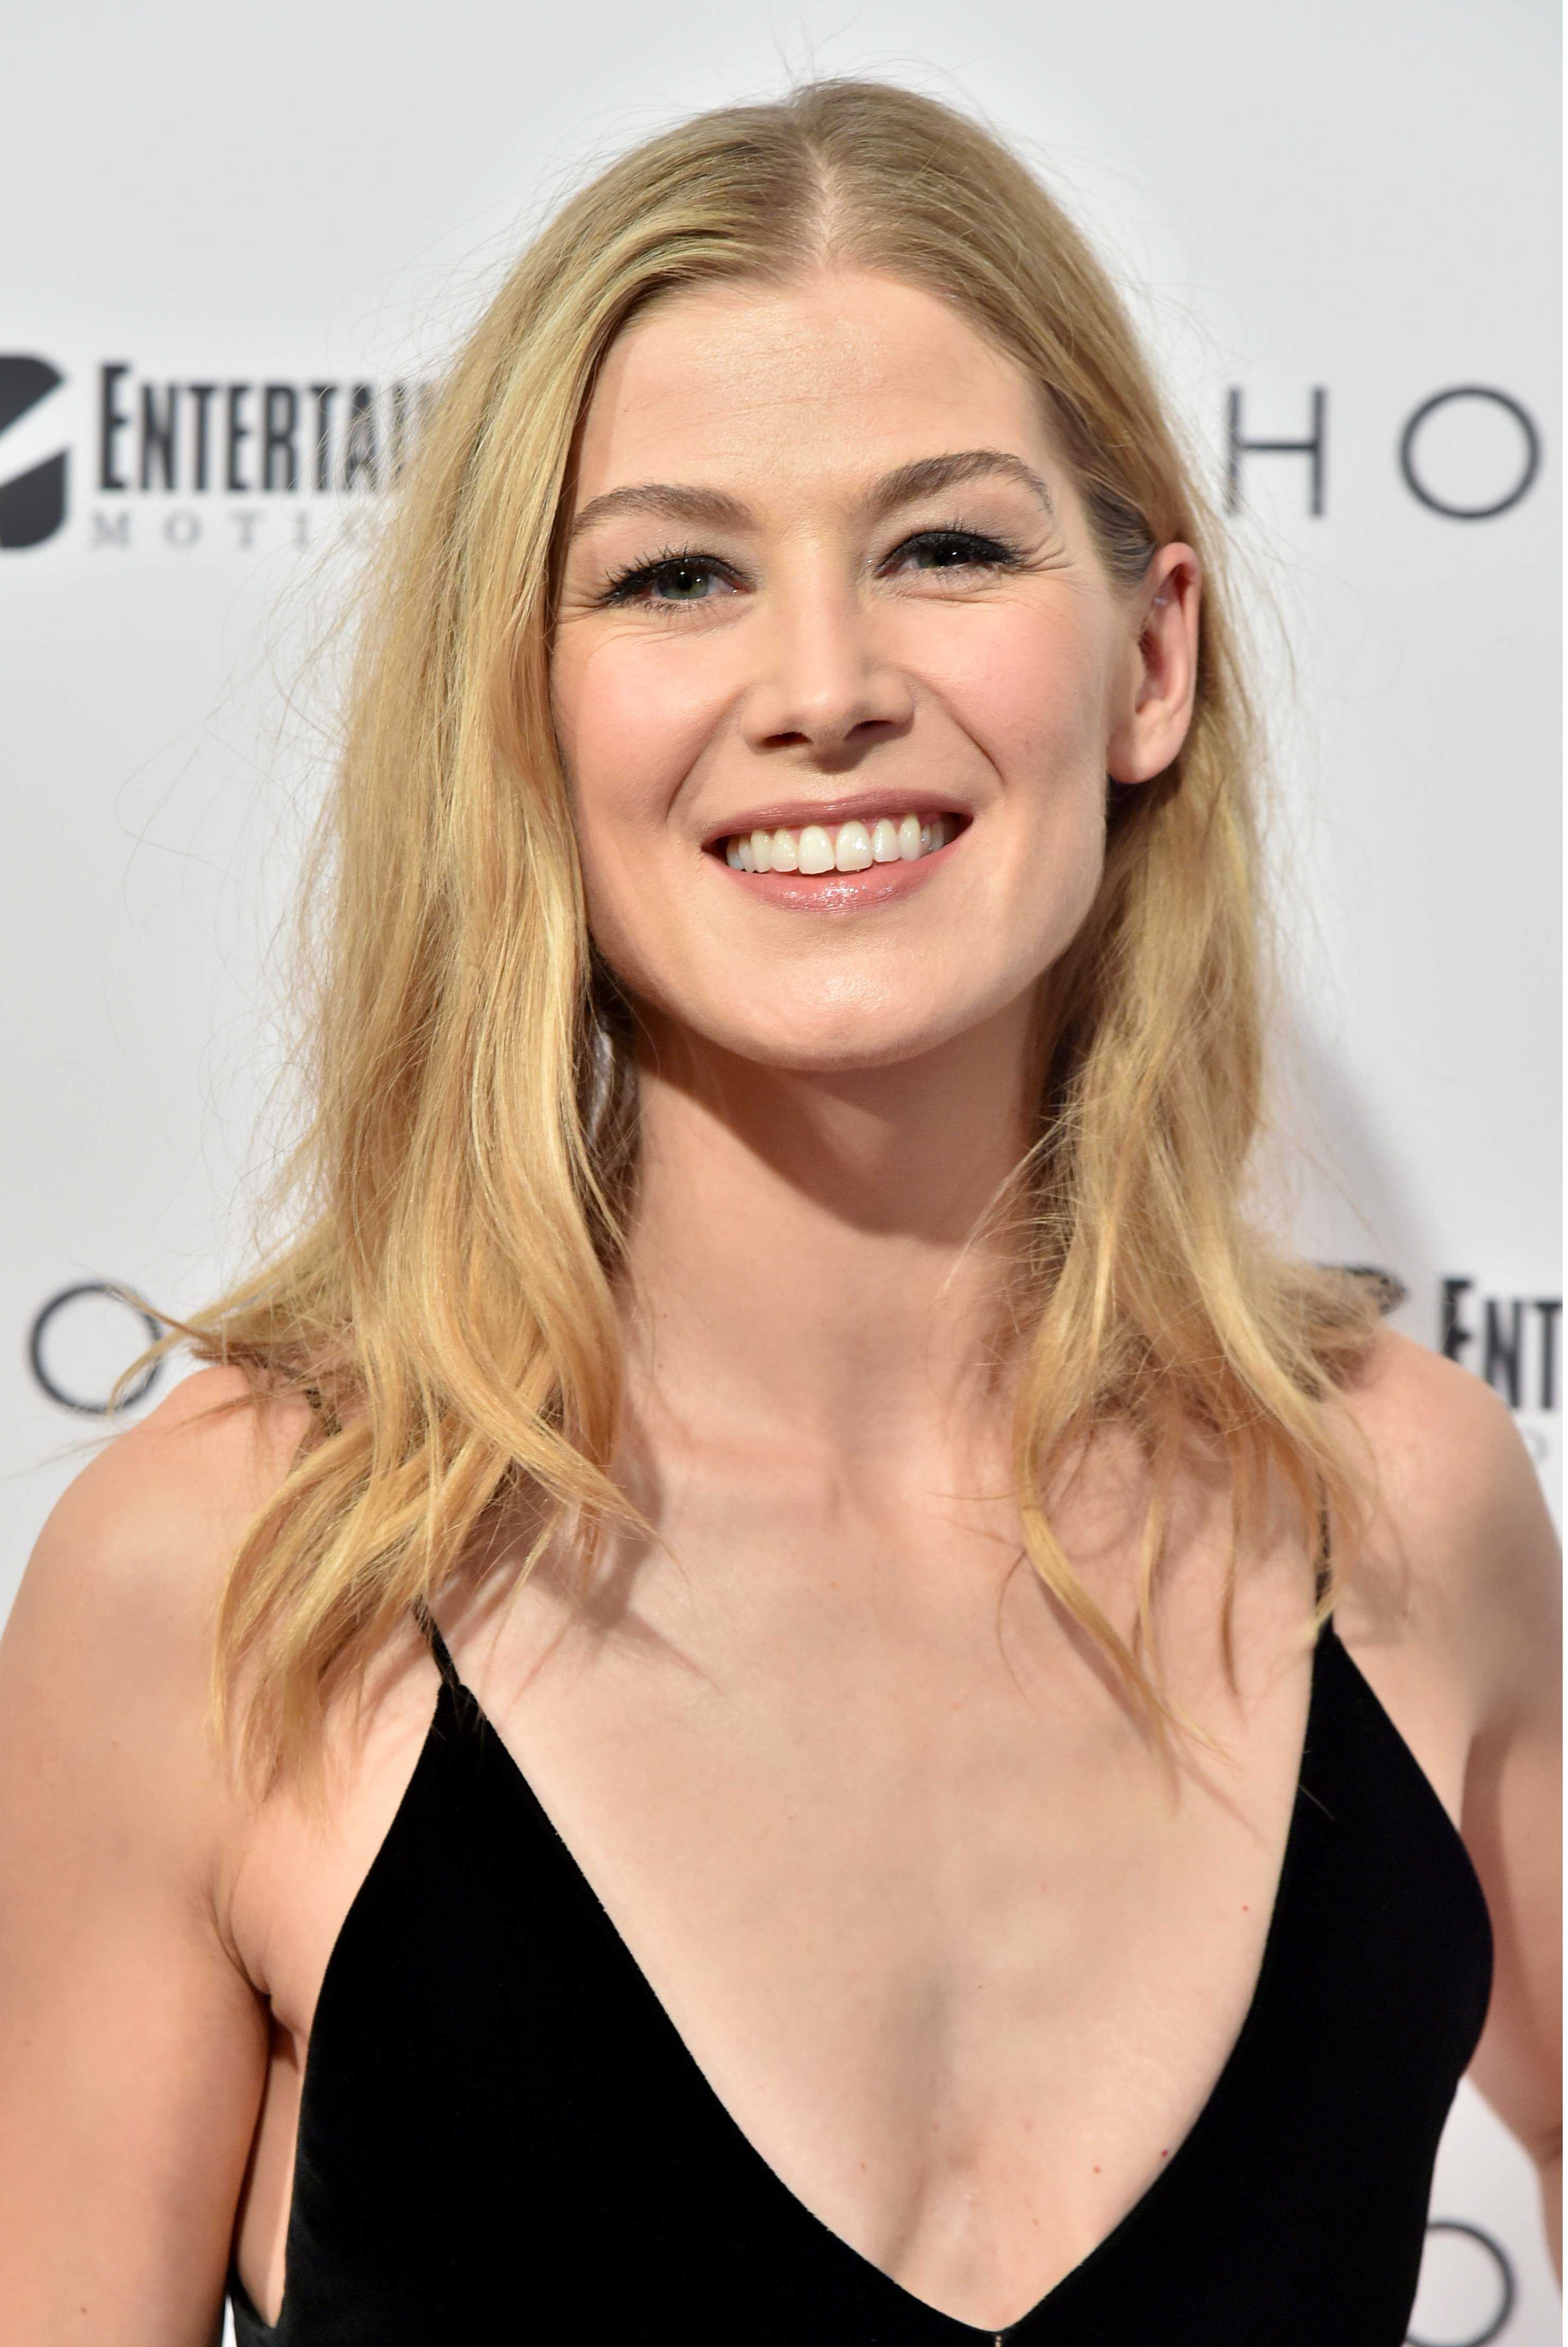 Rosamund Pike (born 1979)